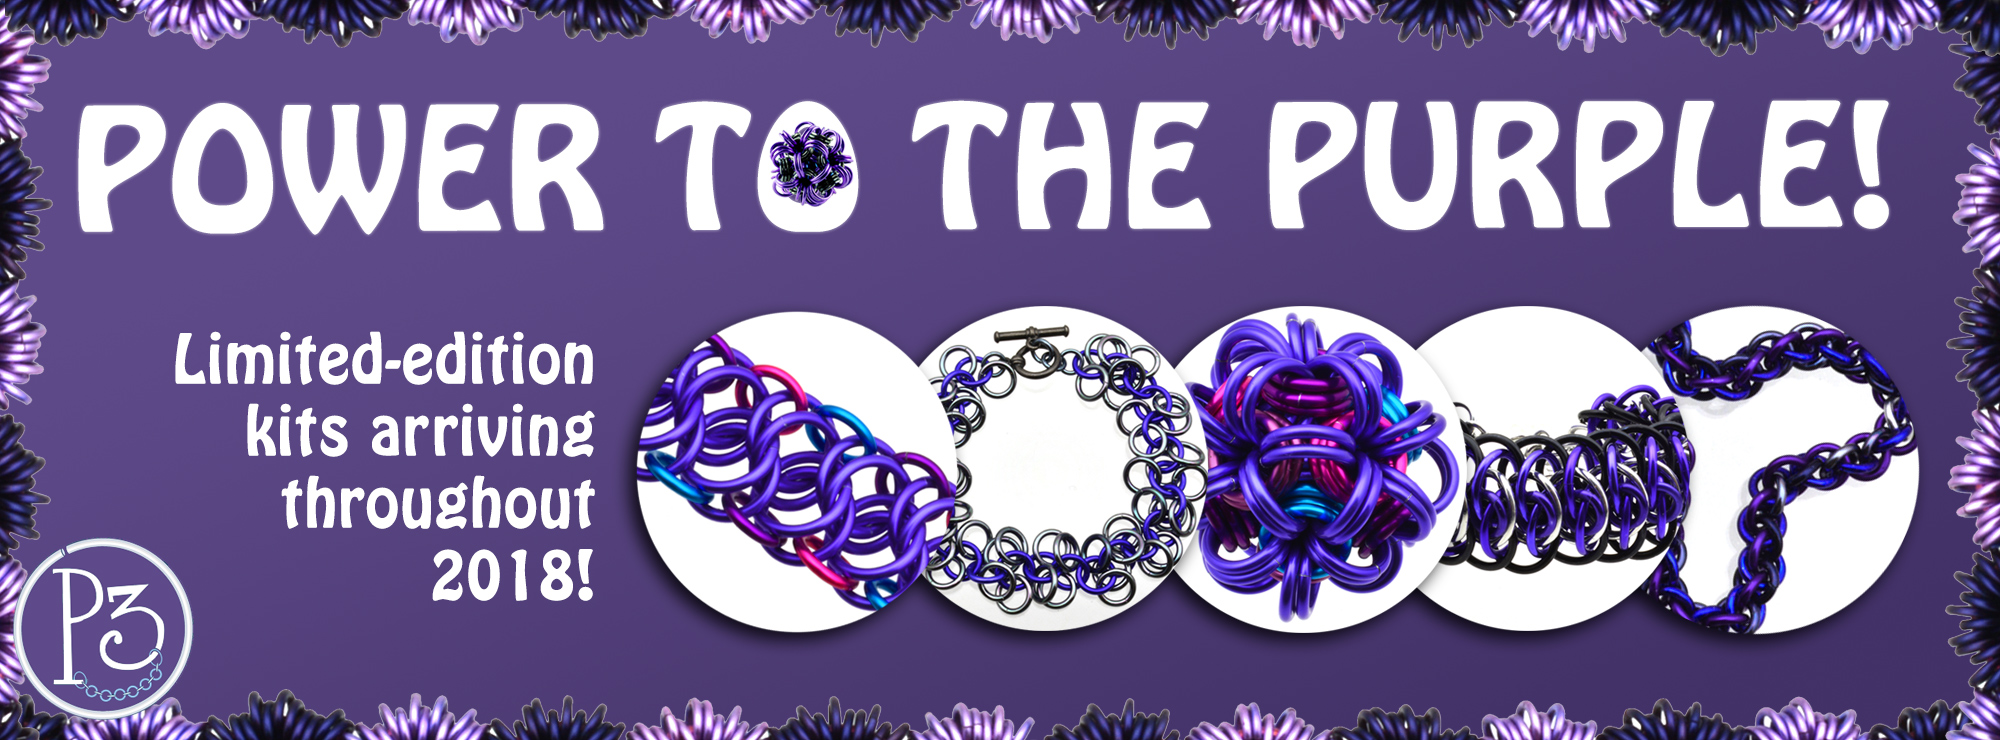 power to the purple banner with ultra violet chainmaille designs